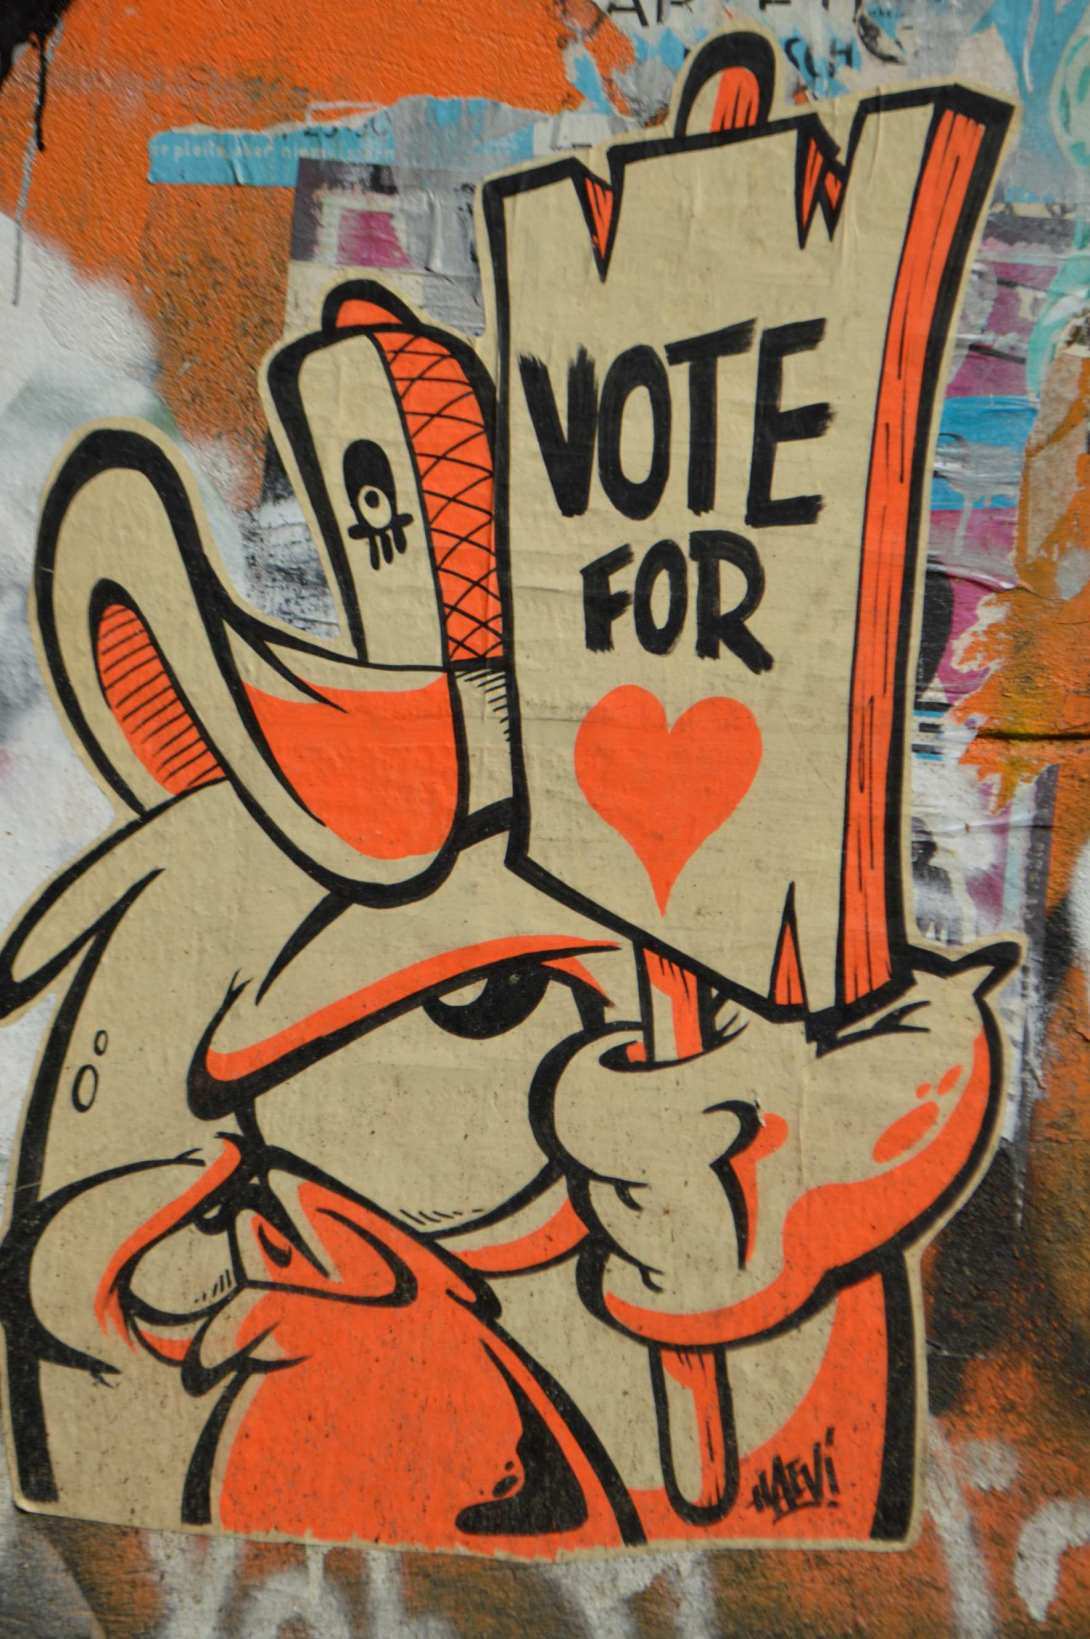 Vote for Love paste up